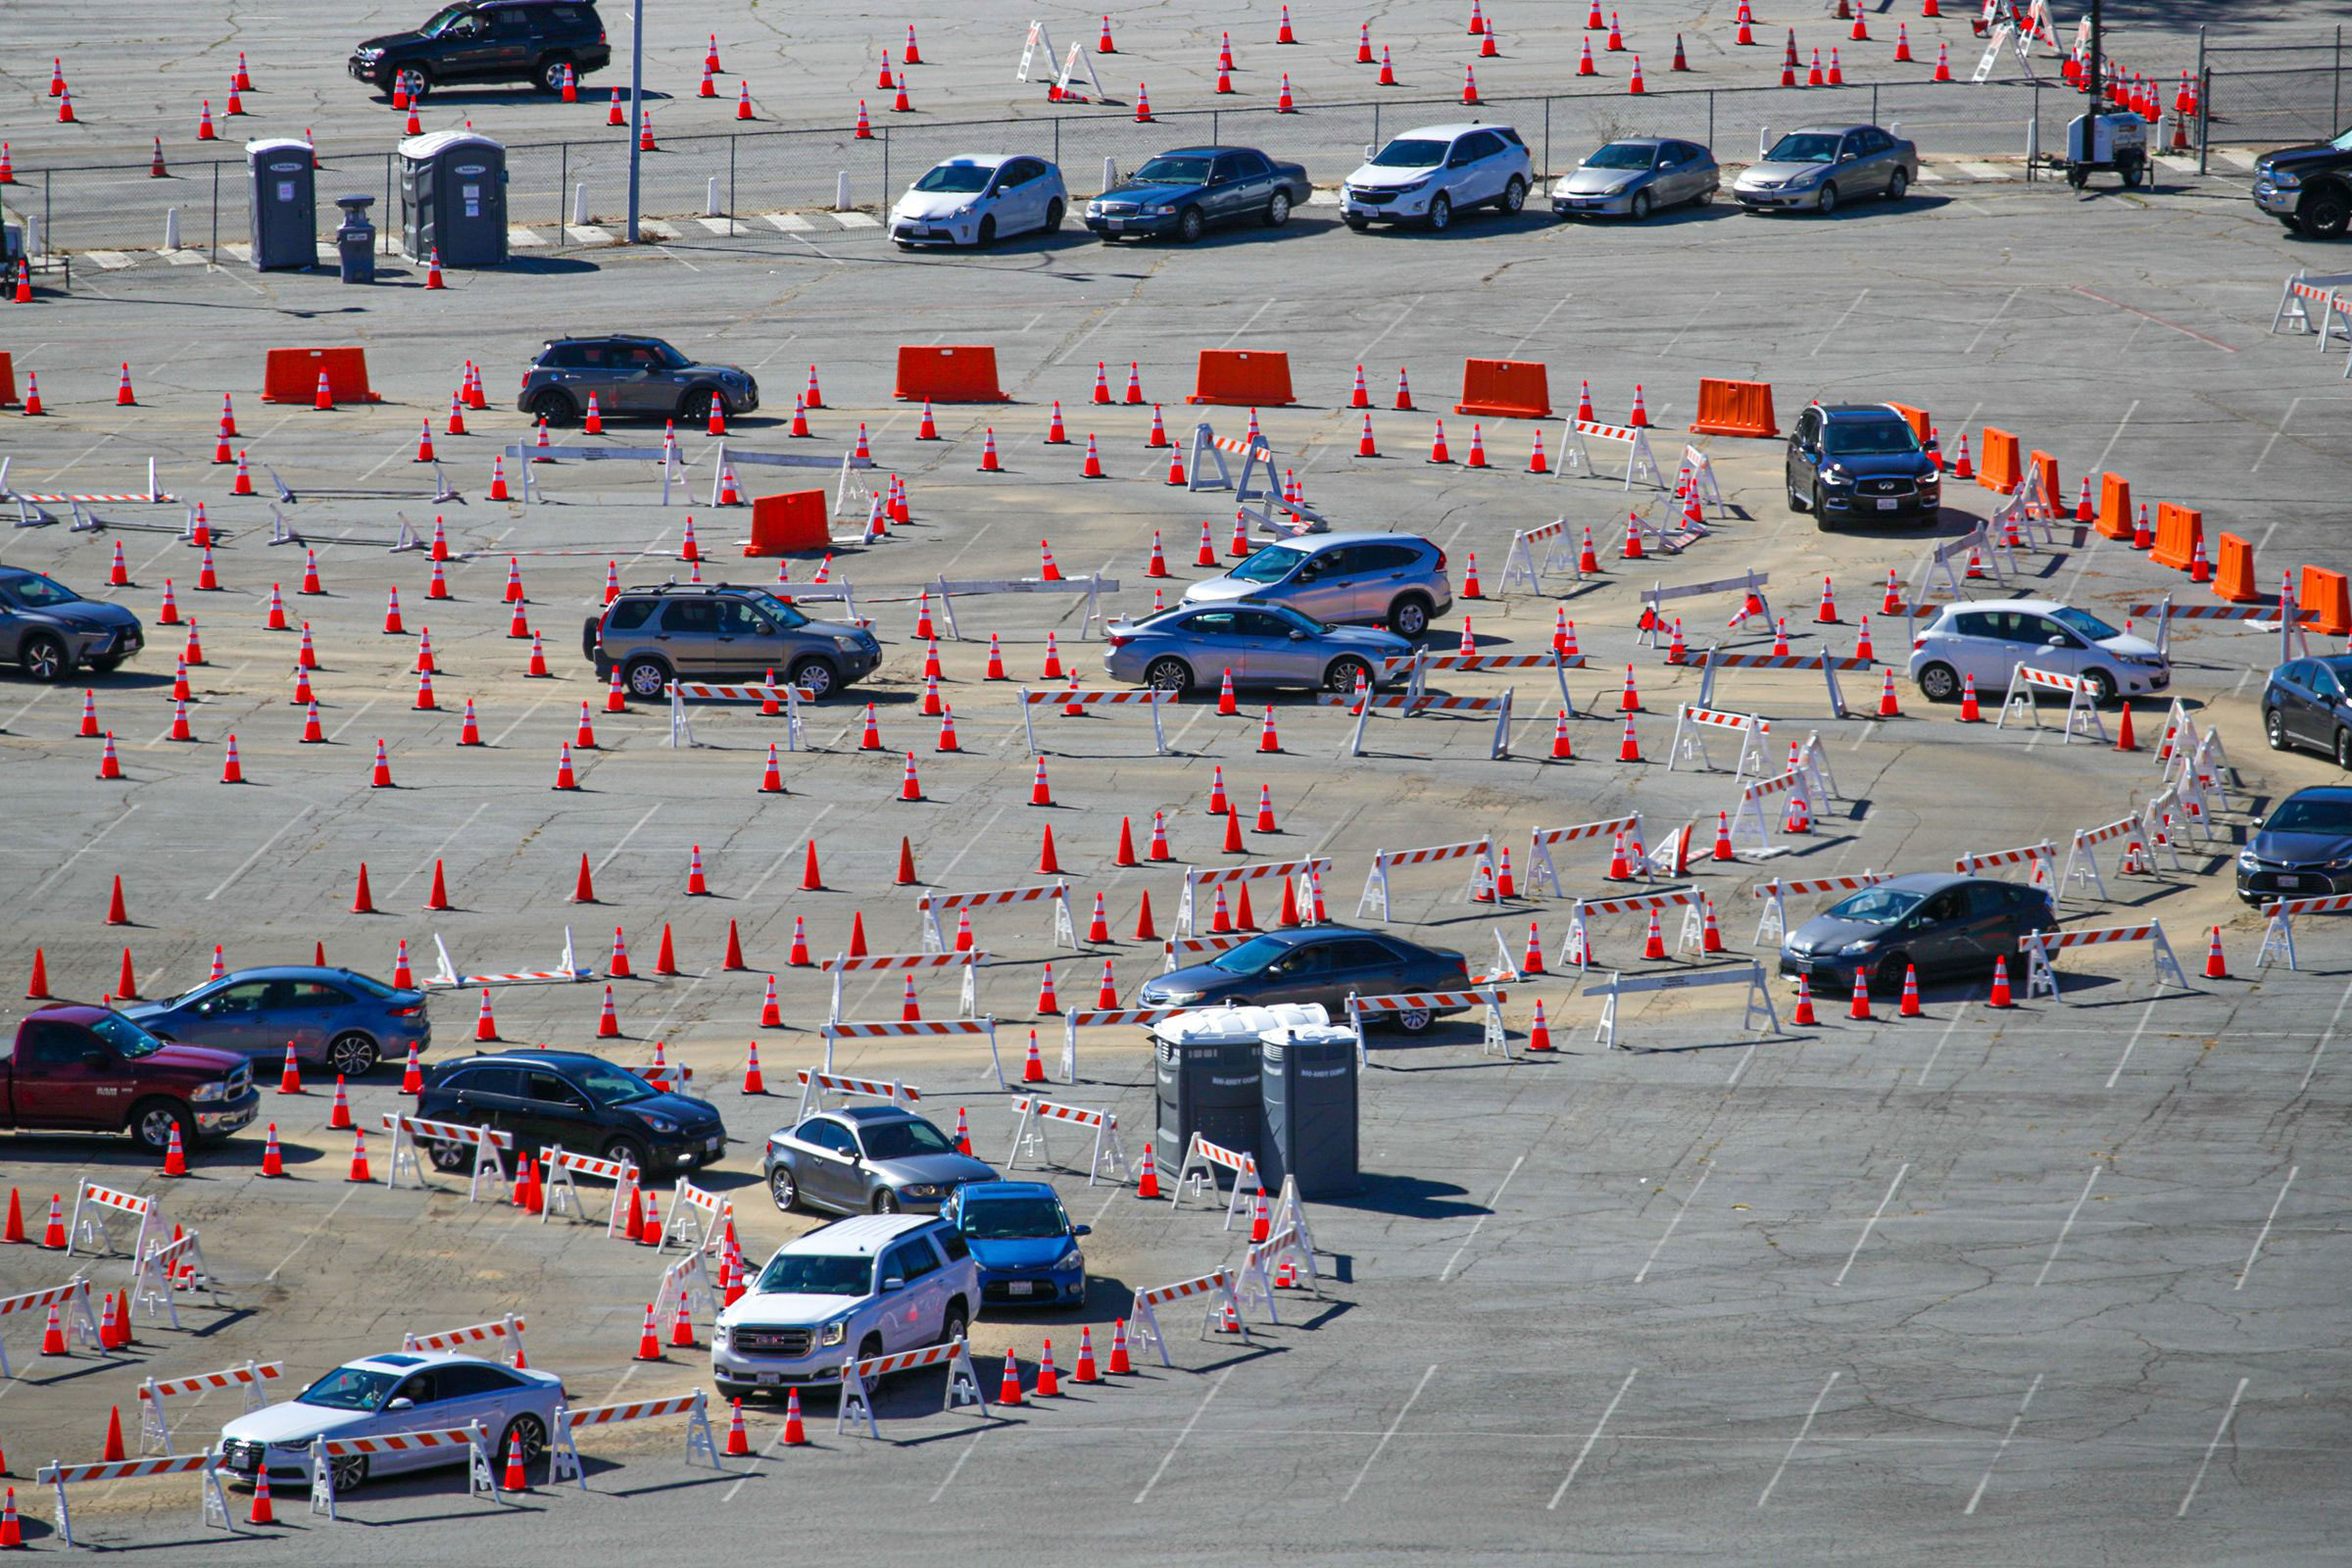 People line up to receive Covid-19 vaccinations at Dodger Stadium in Los Angeles on January 30.